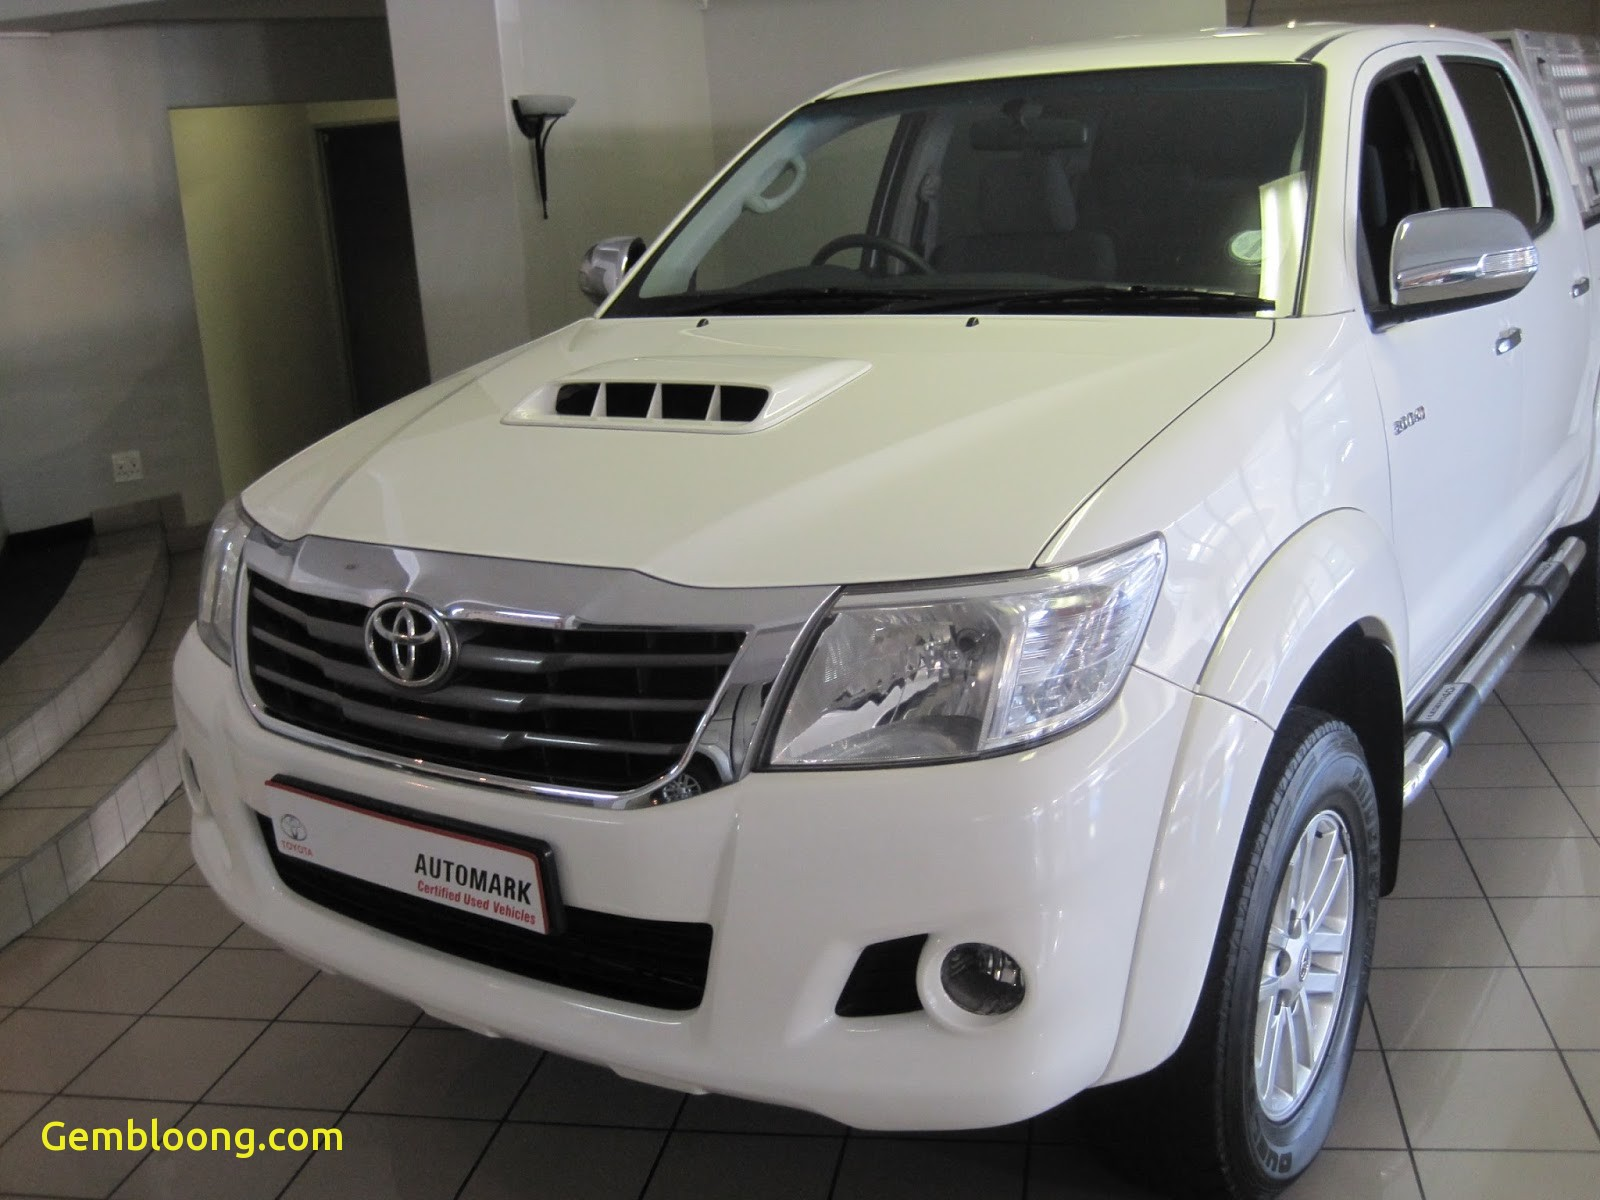 Car Sale Olx Luxury Cars for Sale by Gumtree Lovely Gumtree Second Hand Vehicles for